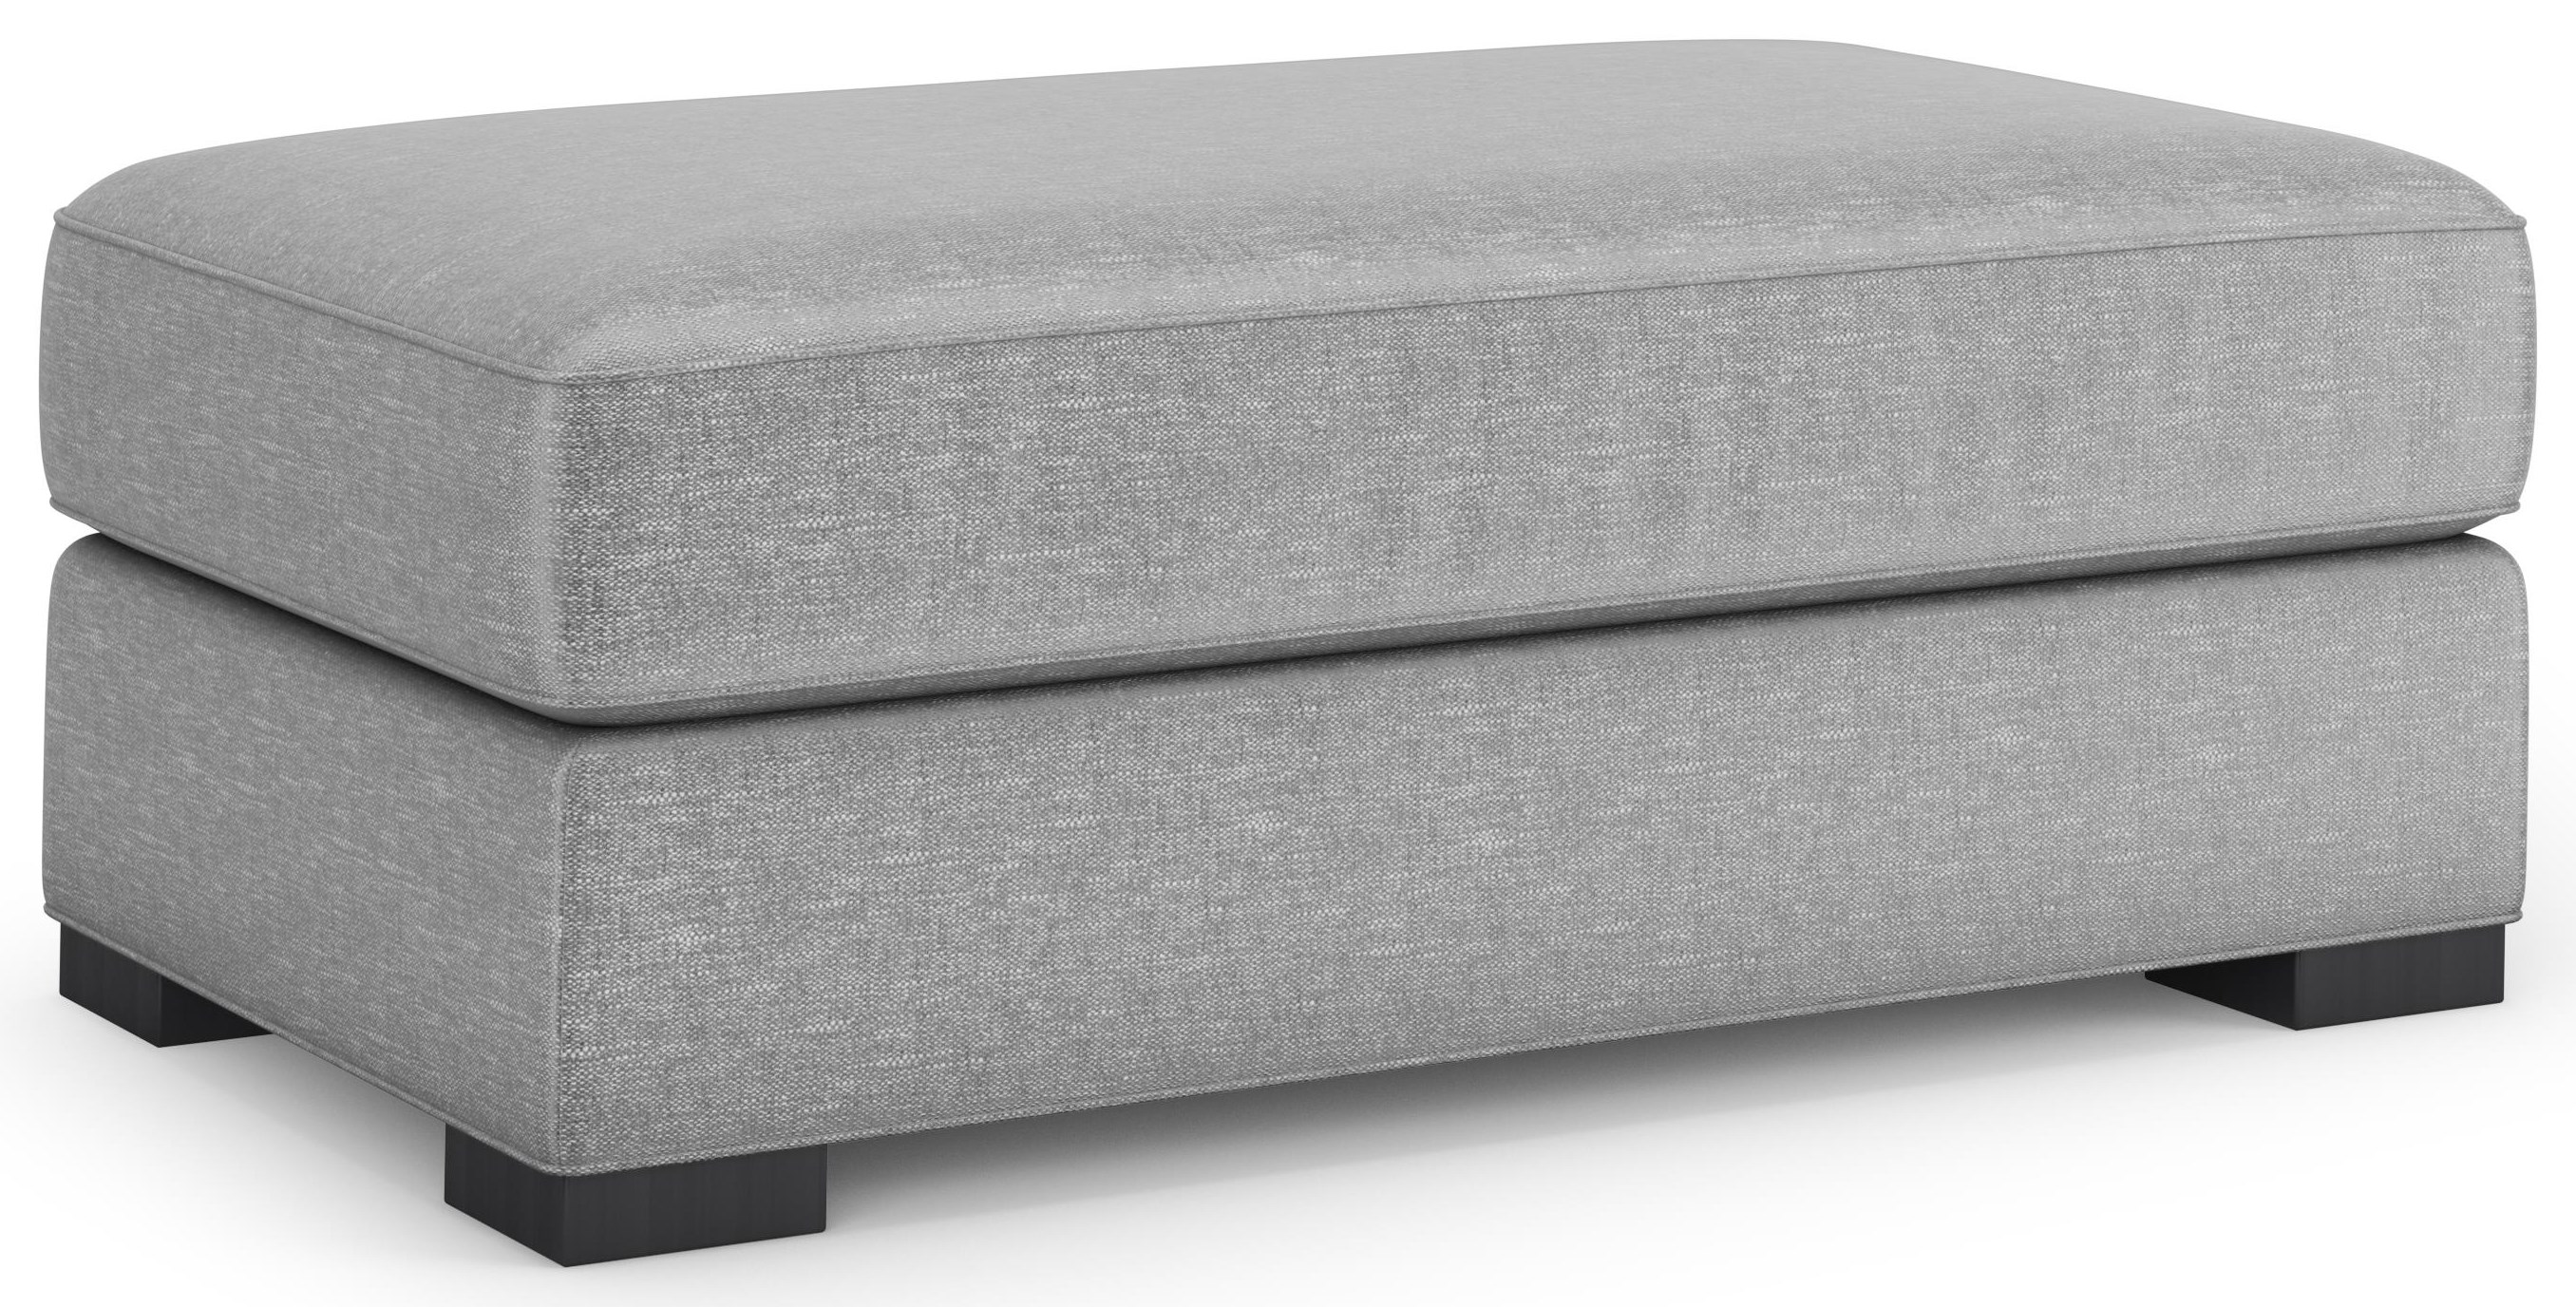 Monroe Monroe Oversized Ottoman by Sunset Home at Walker's Furniture